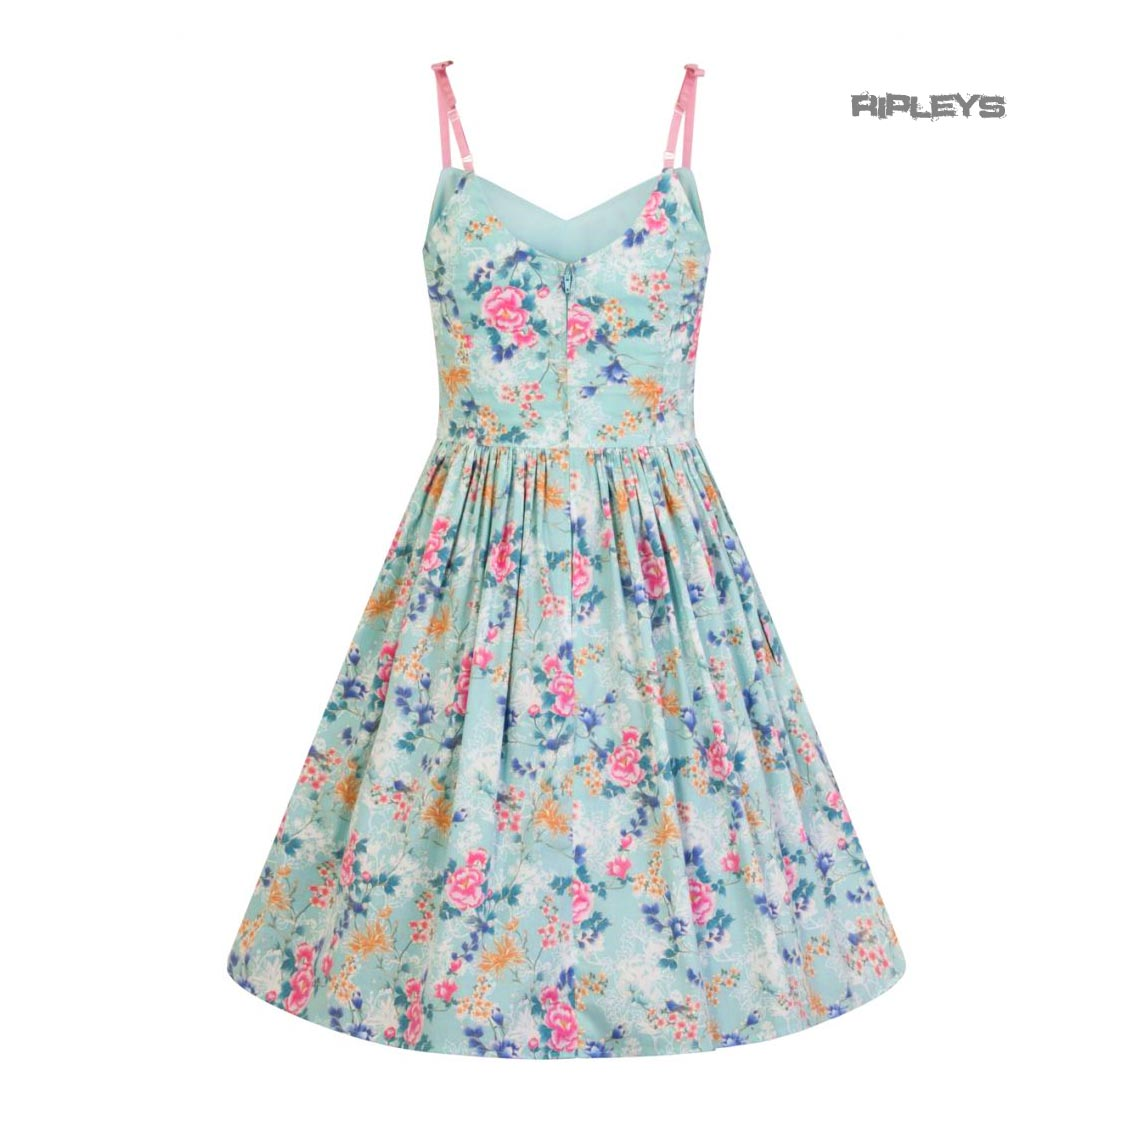 Hell-Bunny-50s-Mid-Length-Dress-Vintage-Blue-Pink-SAKURA-Flowers-Roses-All-Sizes thumbnail 14